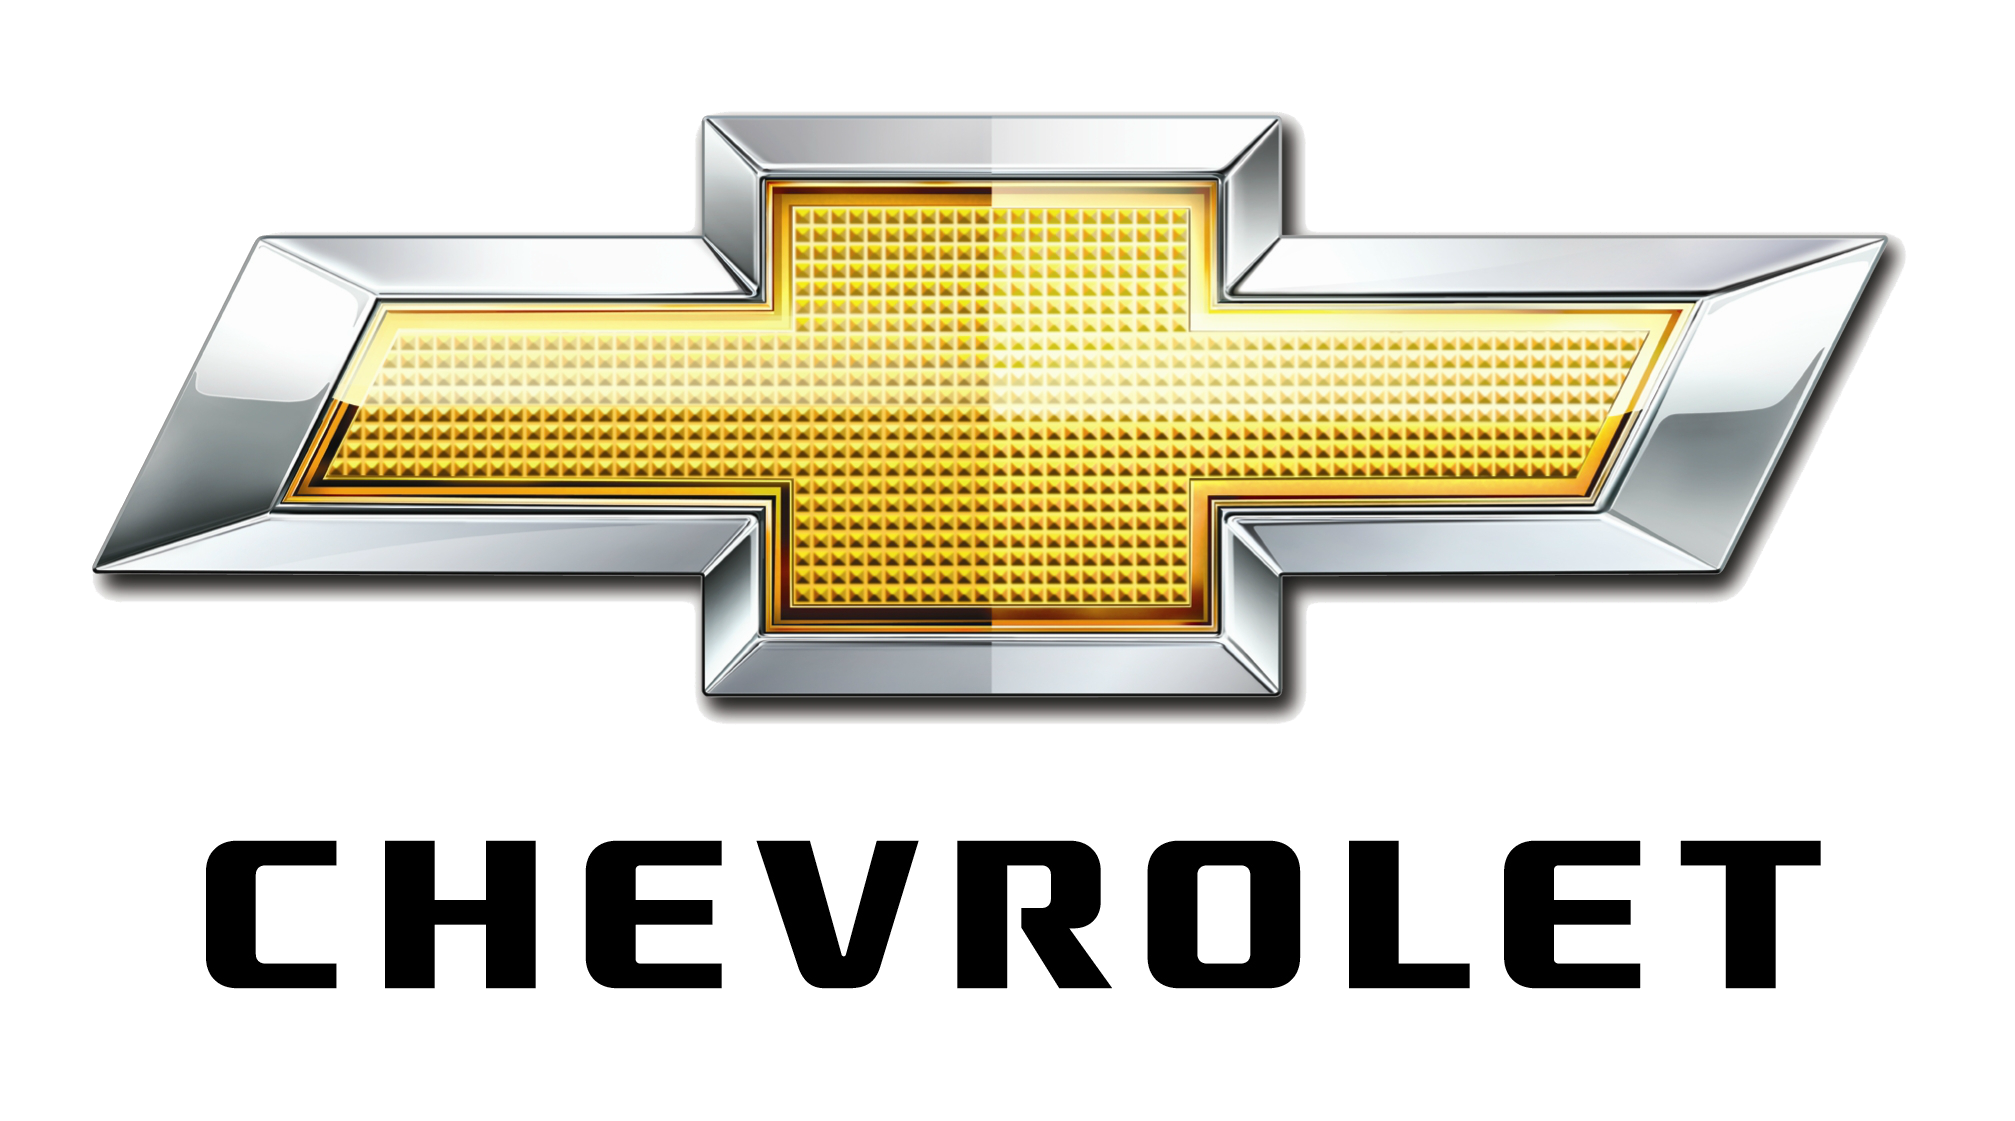 Chevrolet vector log. Chevy logo car symbol